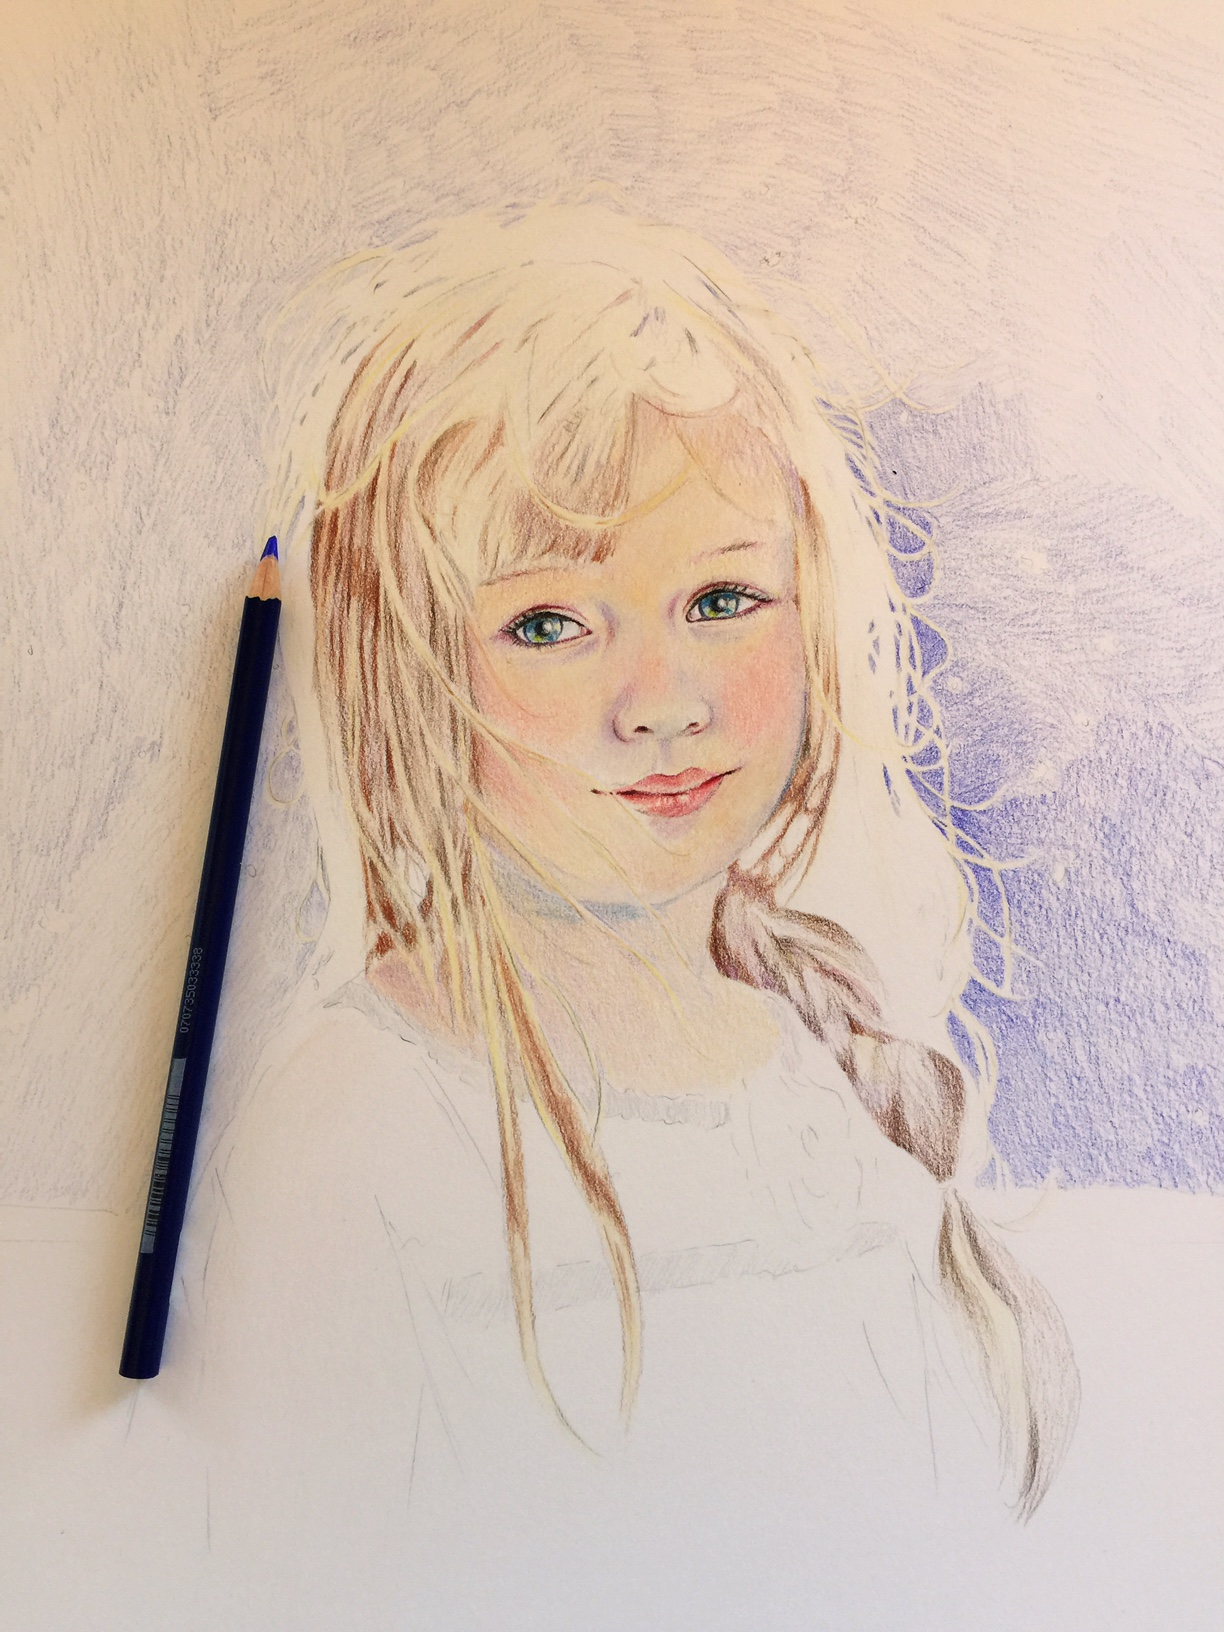 Adding the background to a colored pencil portrait